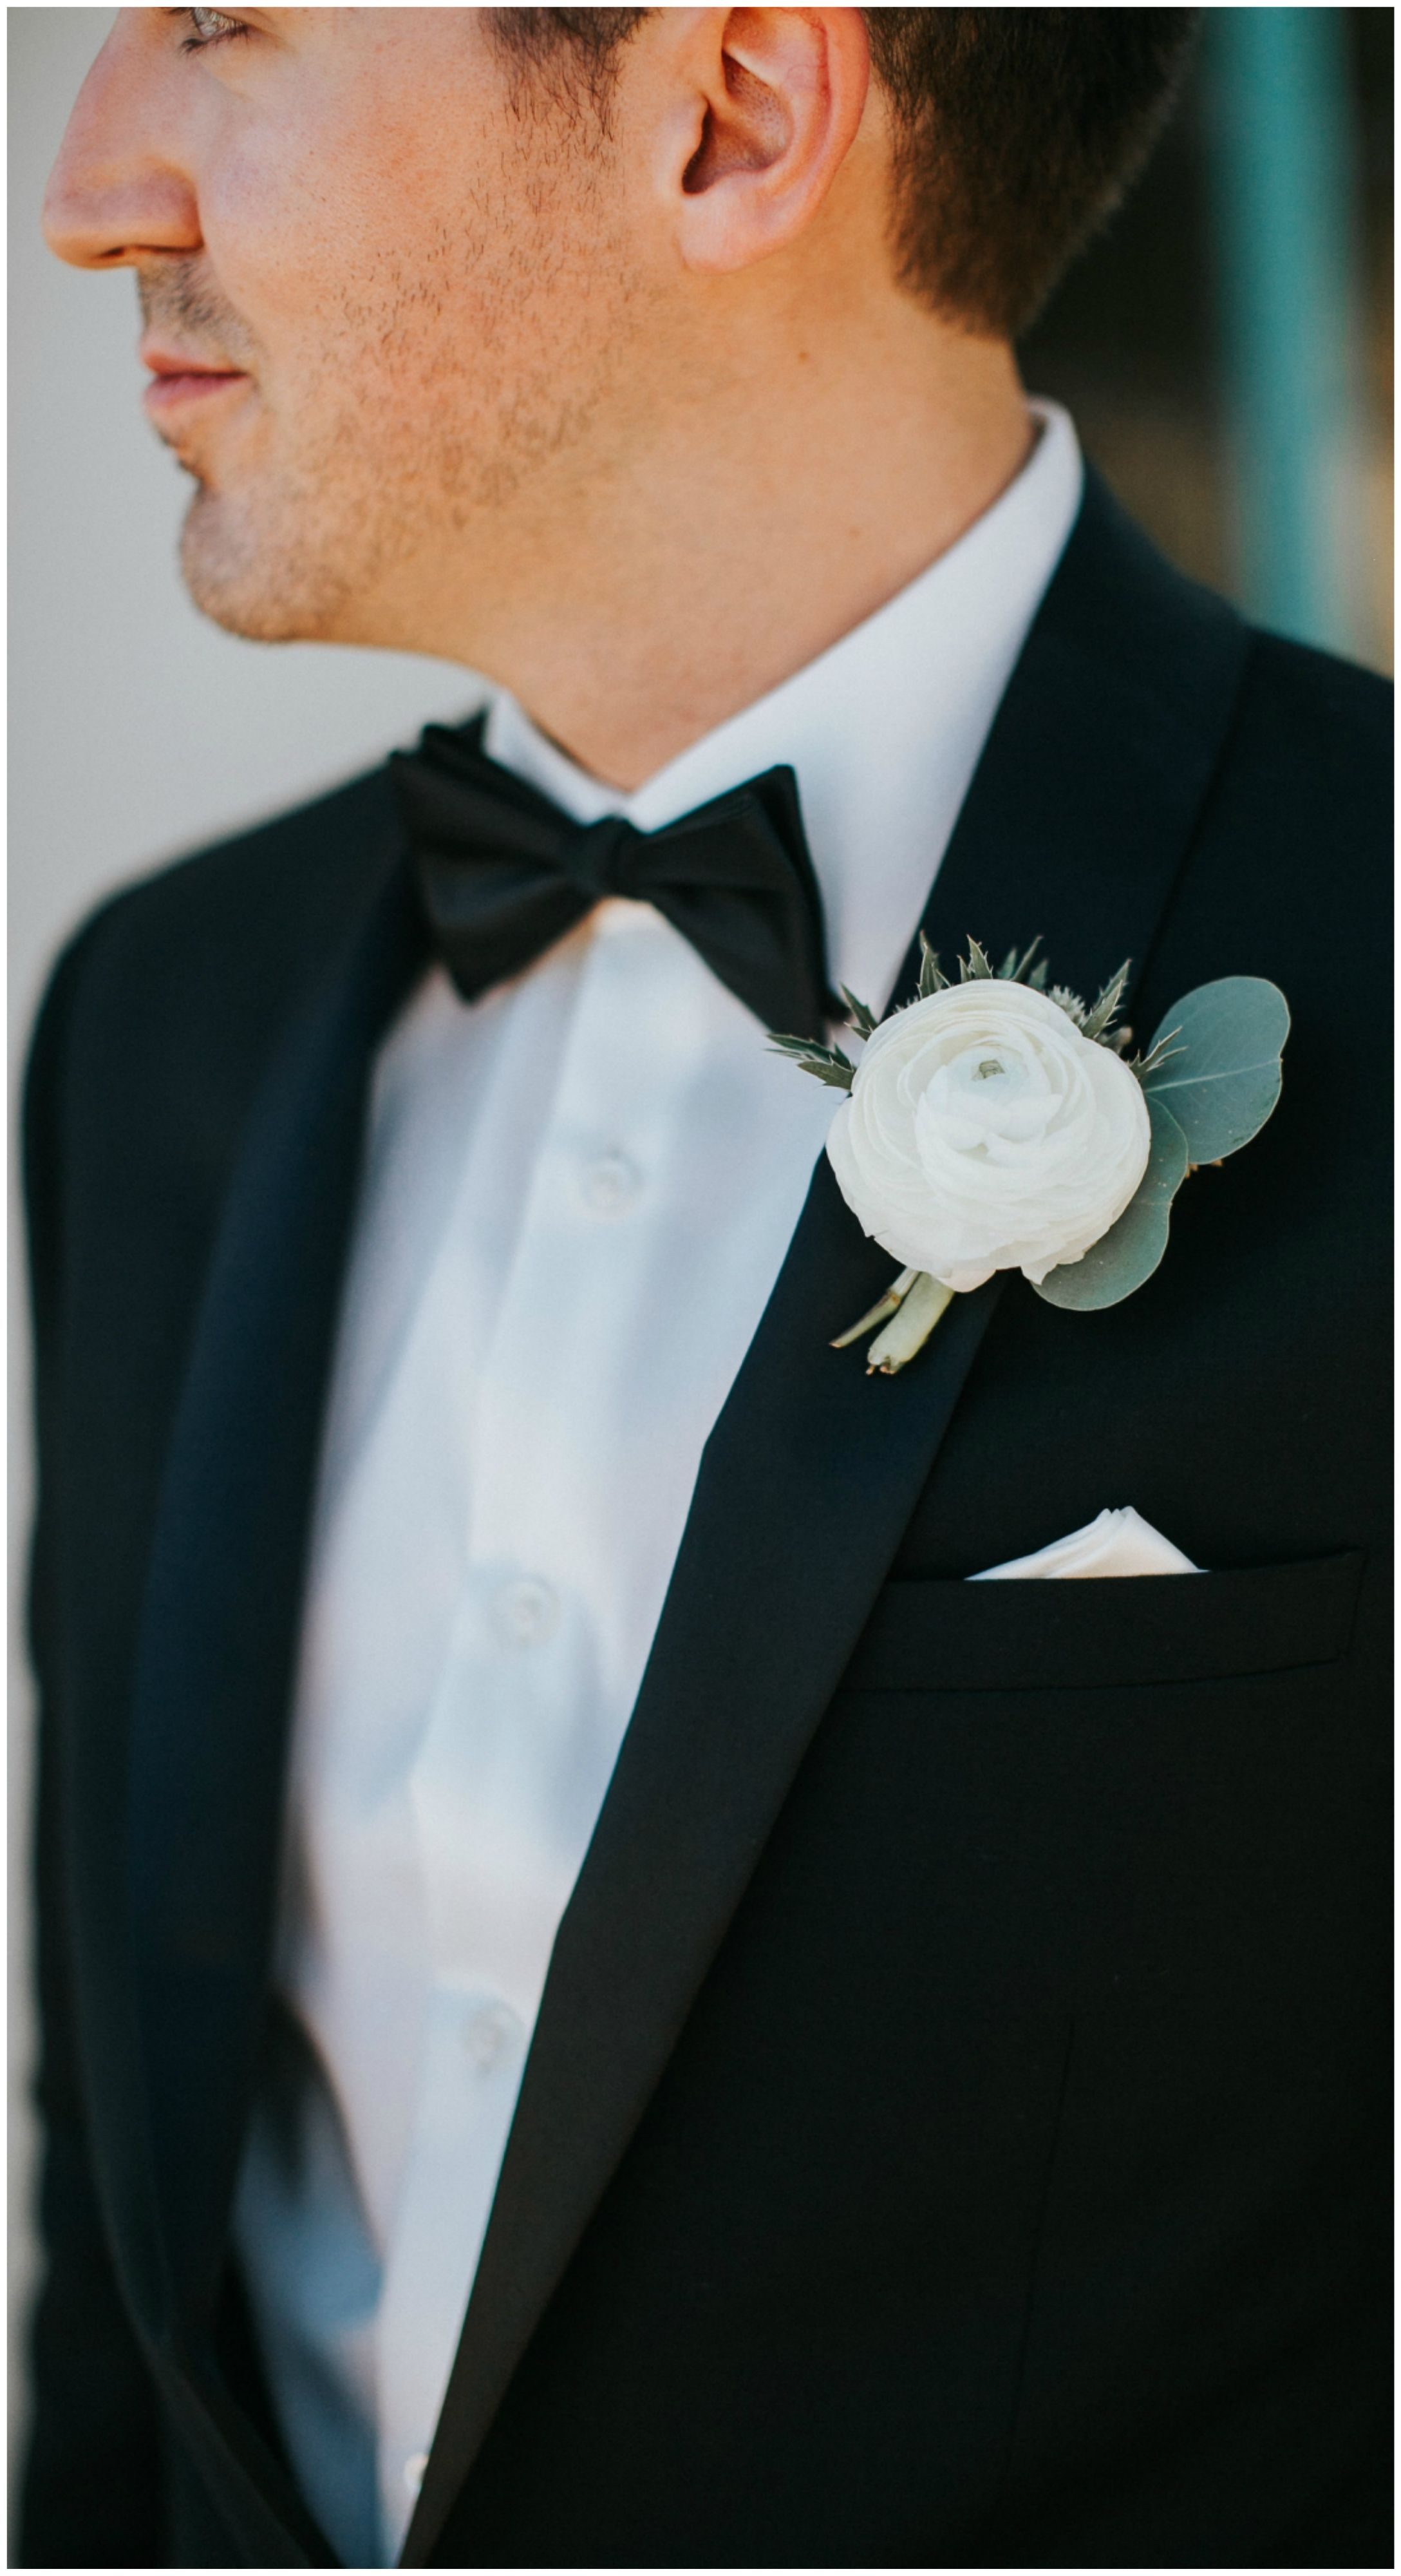 The Smarter Way to Wed | Groom boutonniere, White ranunculus and ...